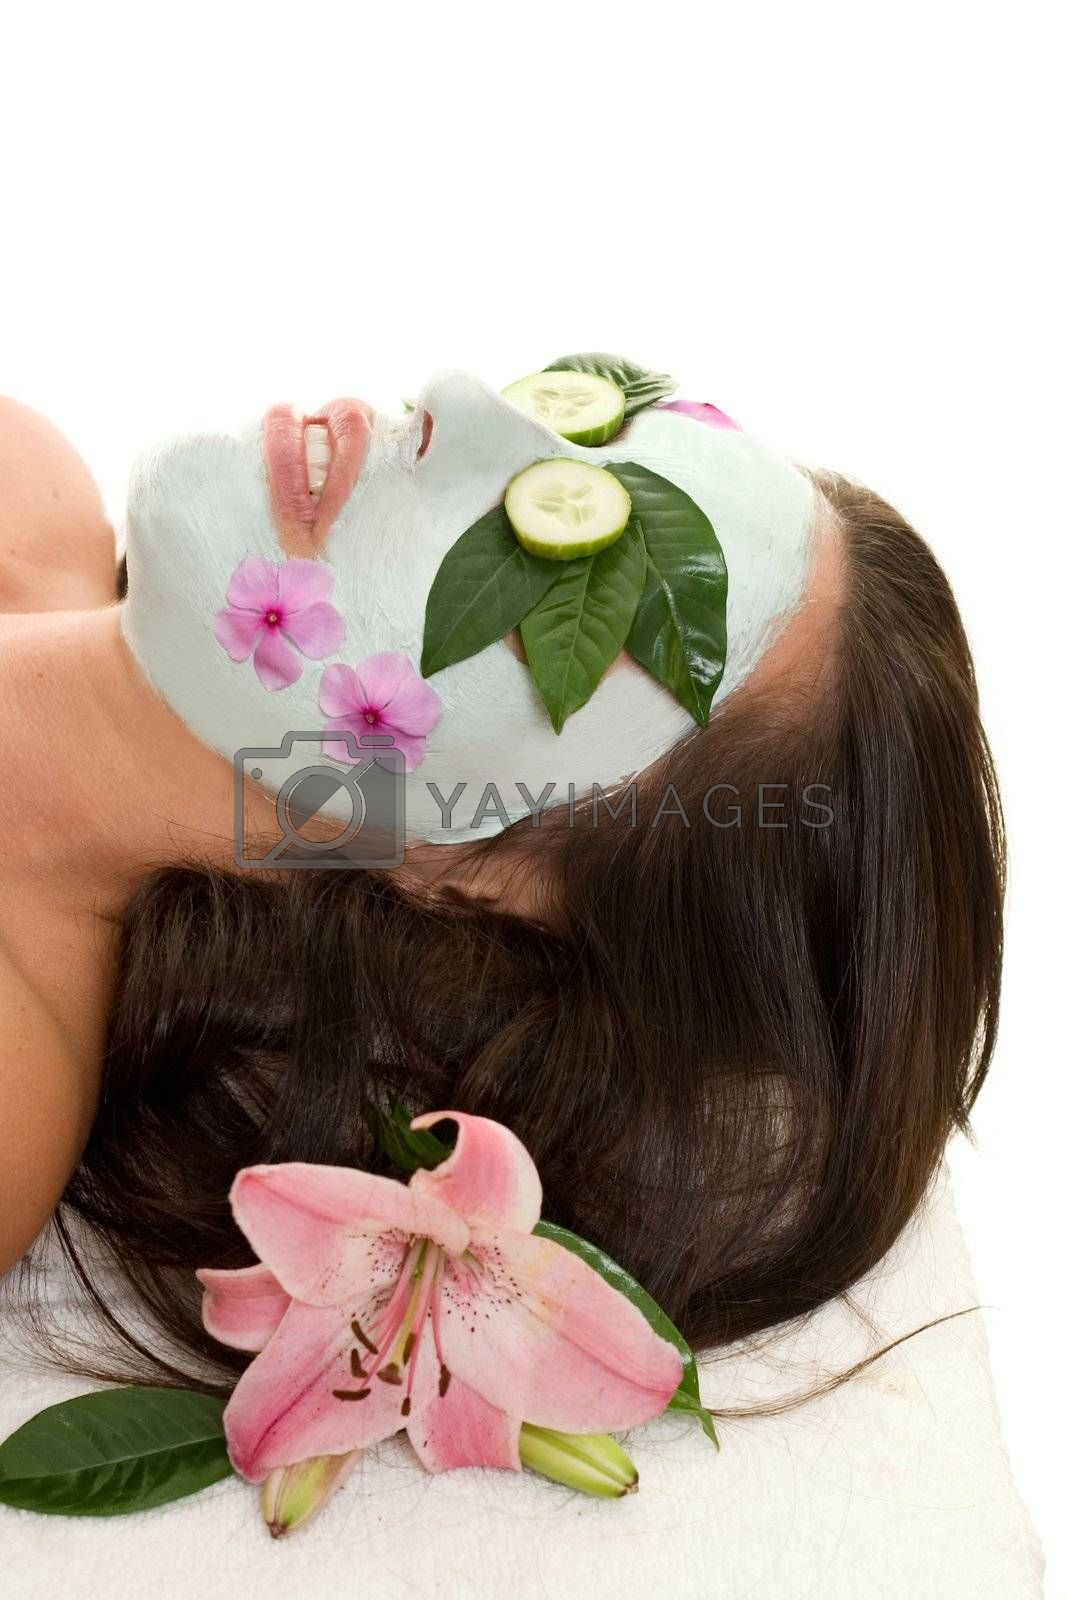 Cucumber and Green Tea Mask by lovleah